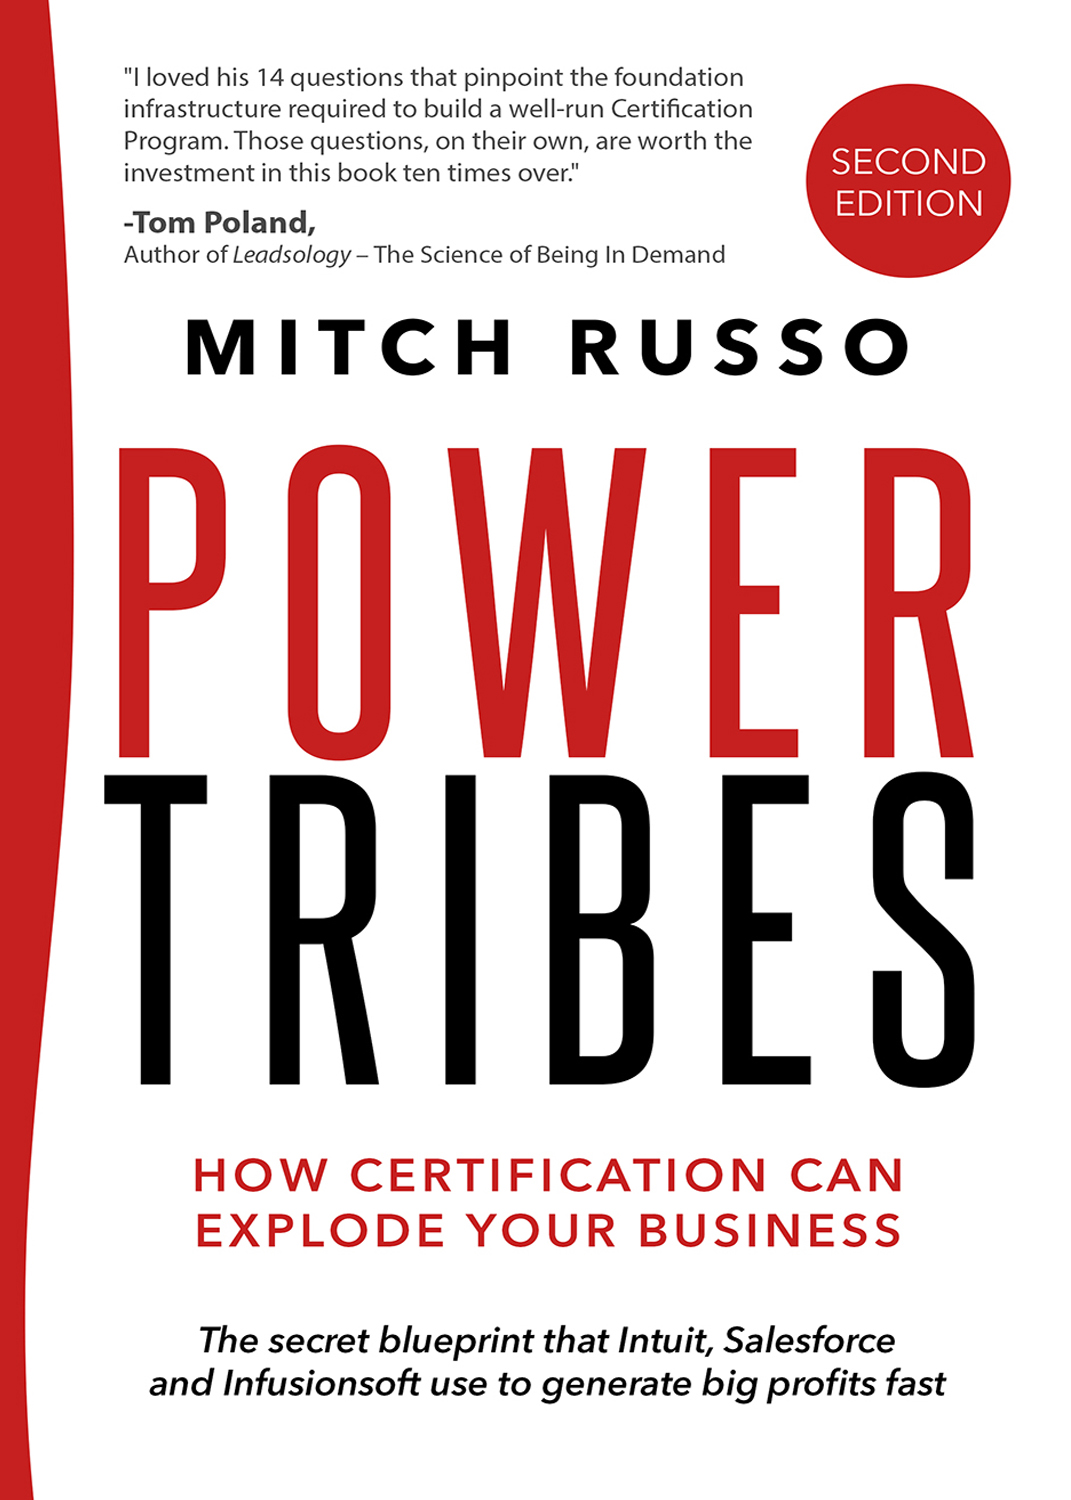 Power Tribes - How Certification Can Explode Your Business